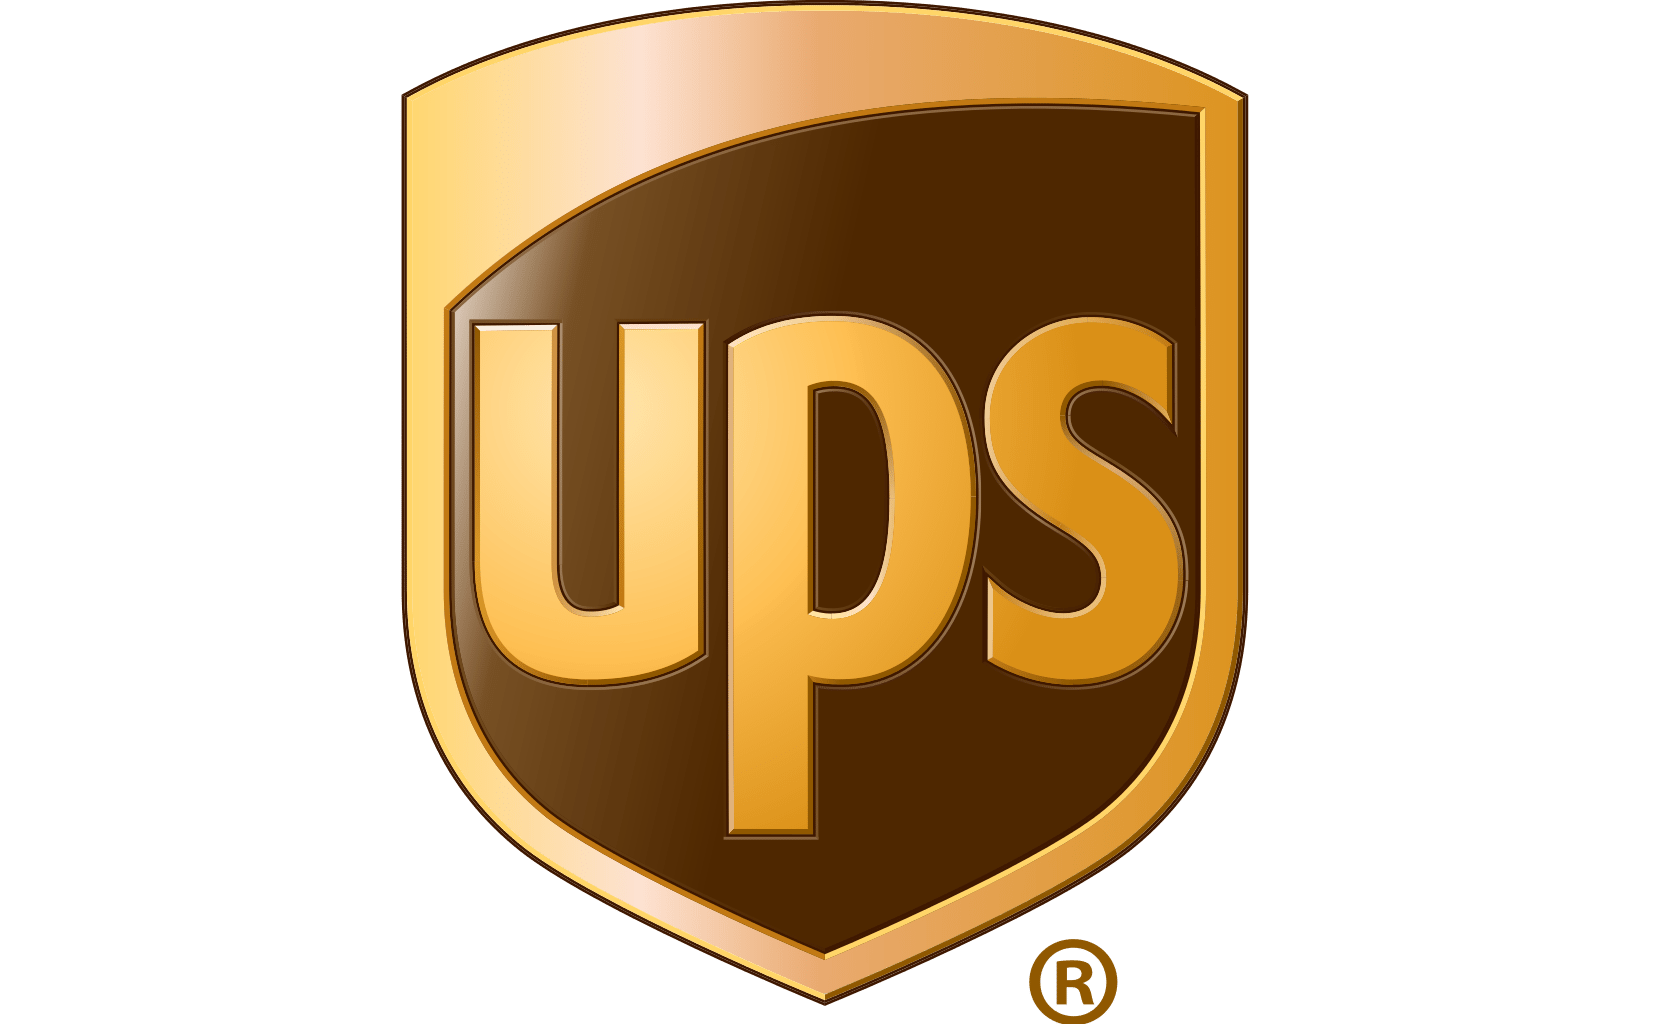 UPS Contact Number